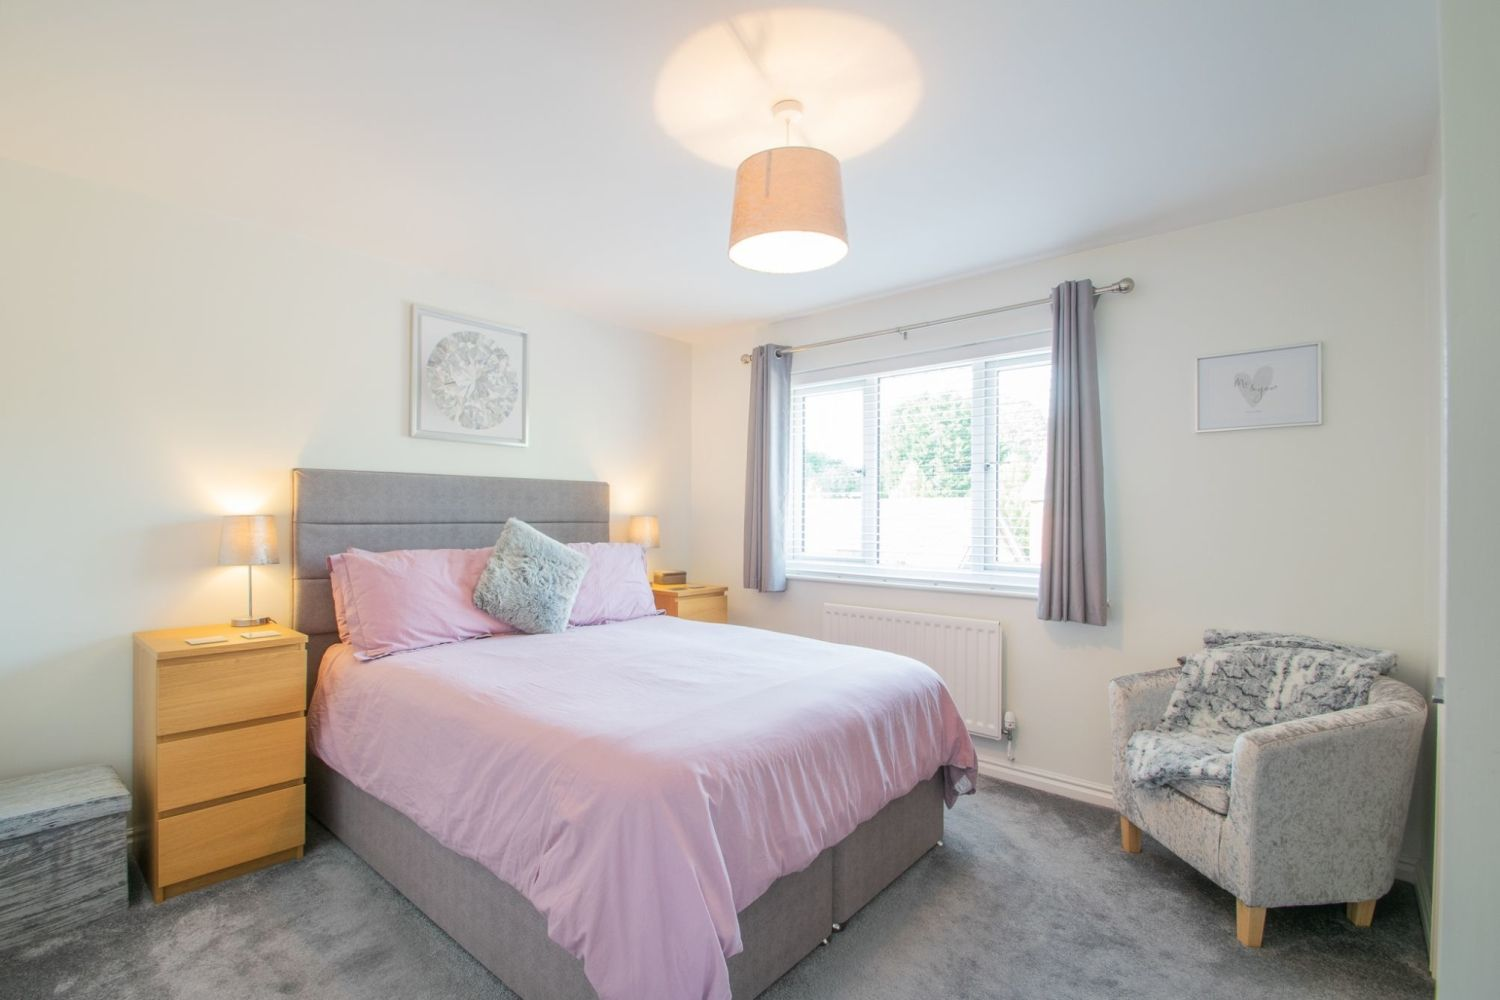 3 bed detached for sale in Batchelor Close, Amblecote  - Property Image 10